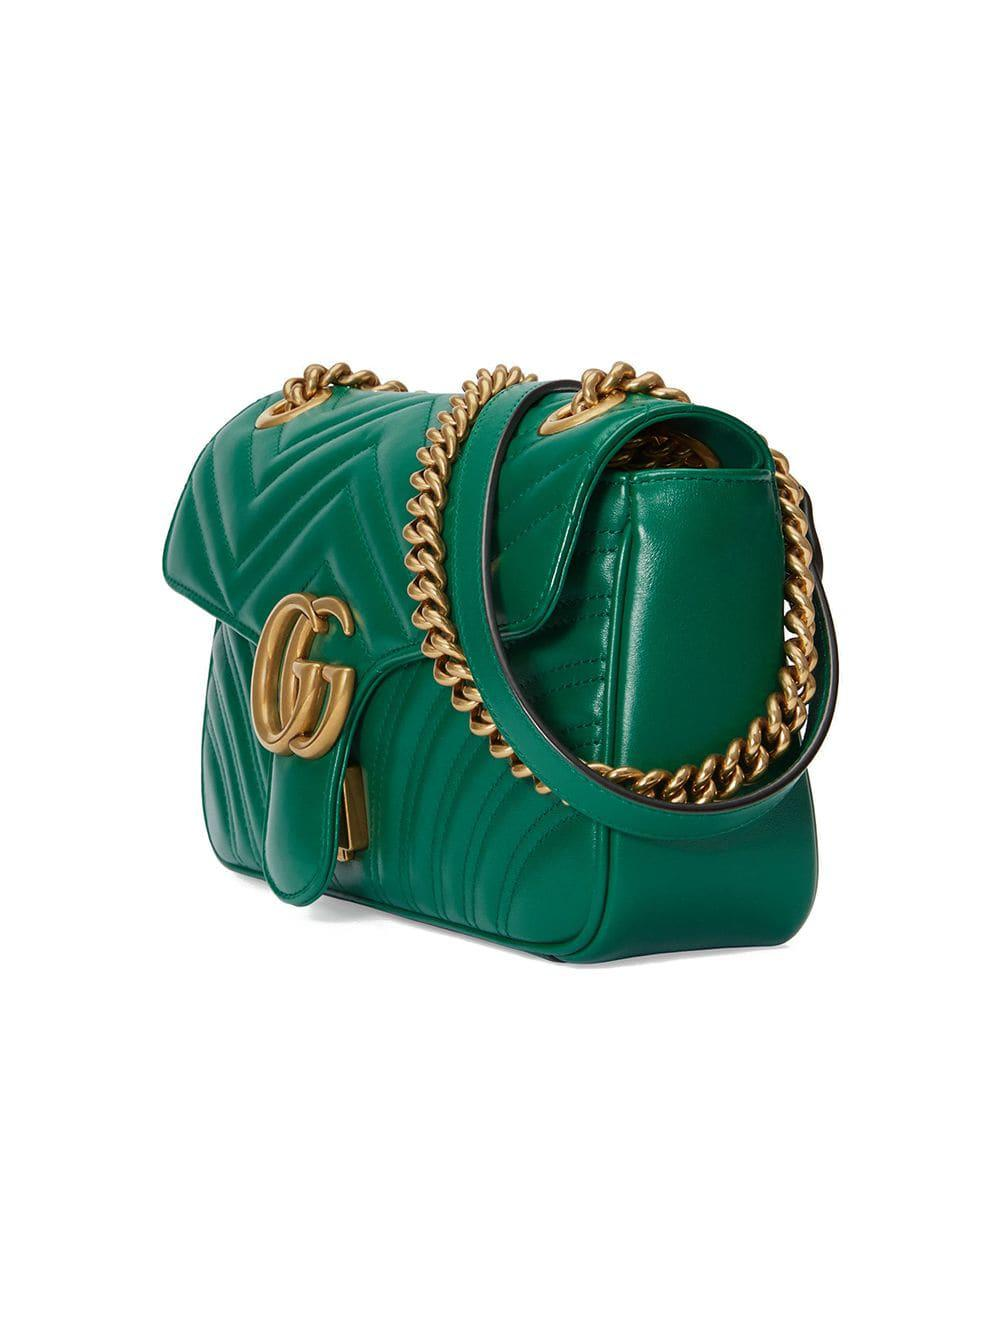 016d237c954c Gucci - Green GG Marmont Small Shoulder Bag - Lyst. View fullscreen